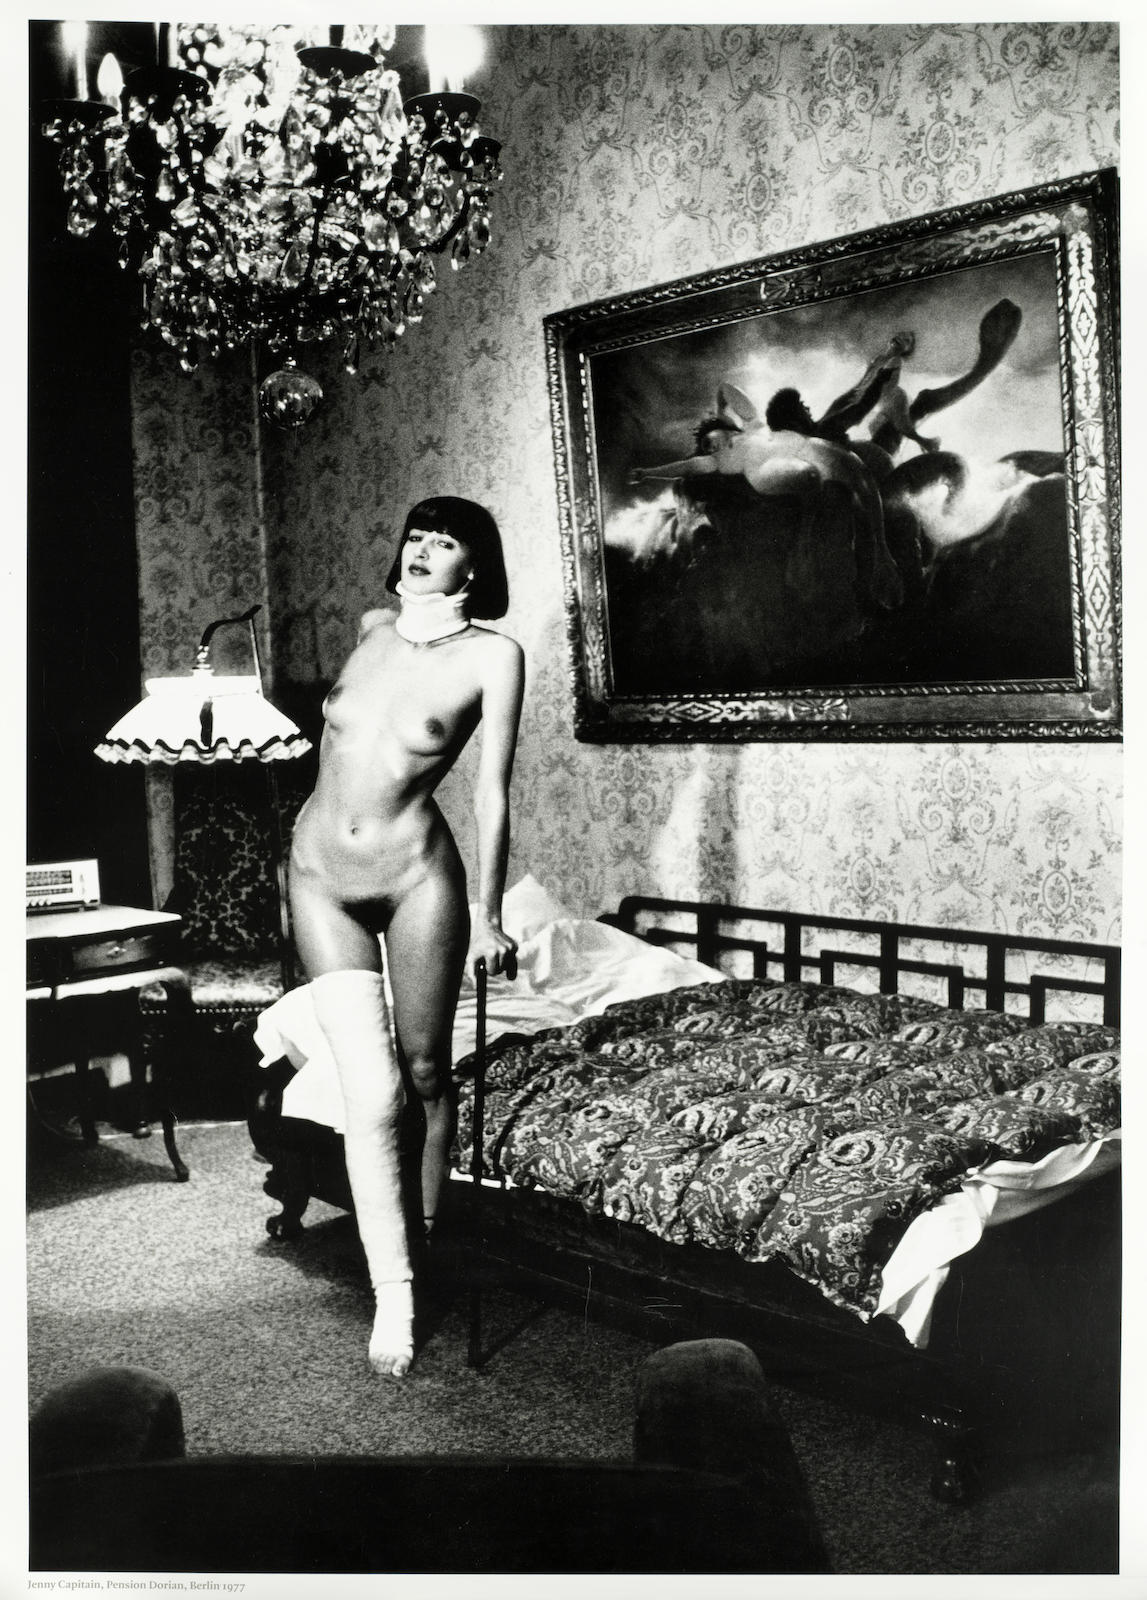 Helmut Newton-After Helmut Newton - Jenny Kapitan, Pension Dorian, Berlin-1977